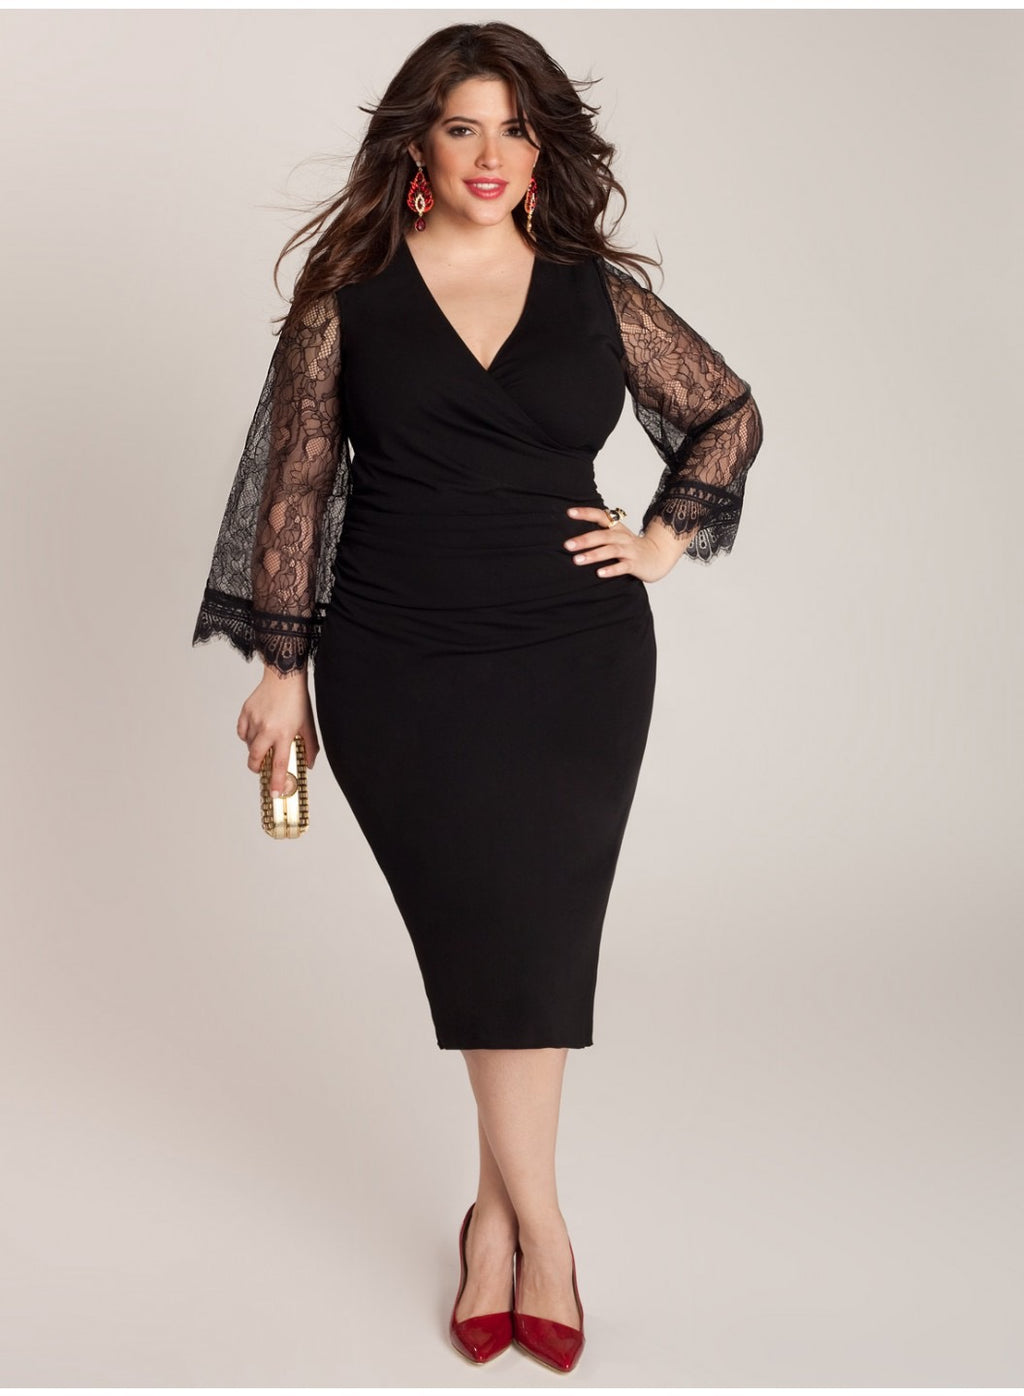 paola-plus-size-black-dress